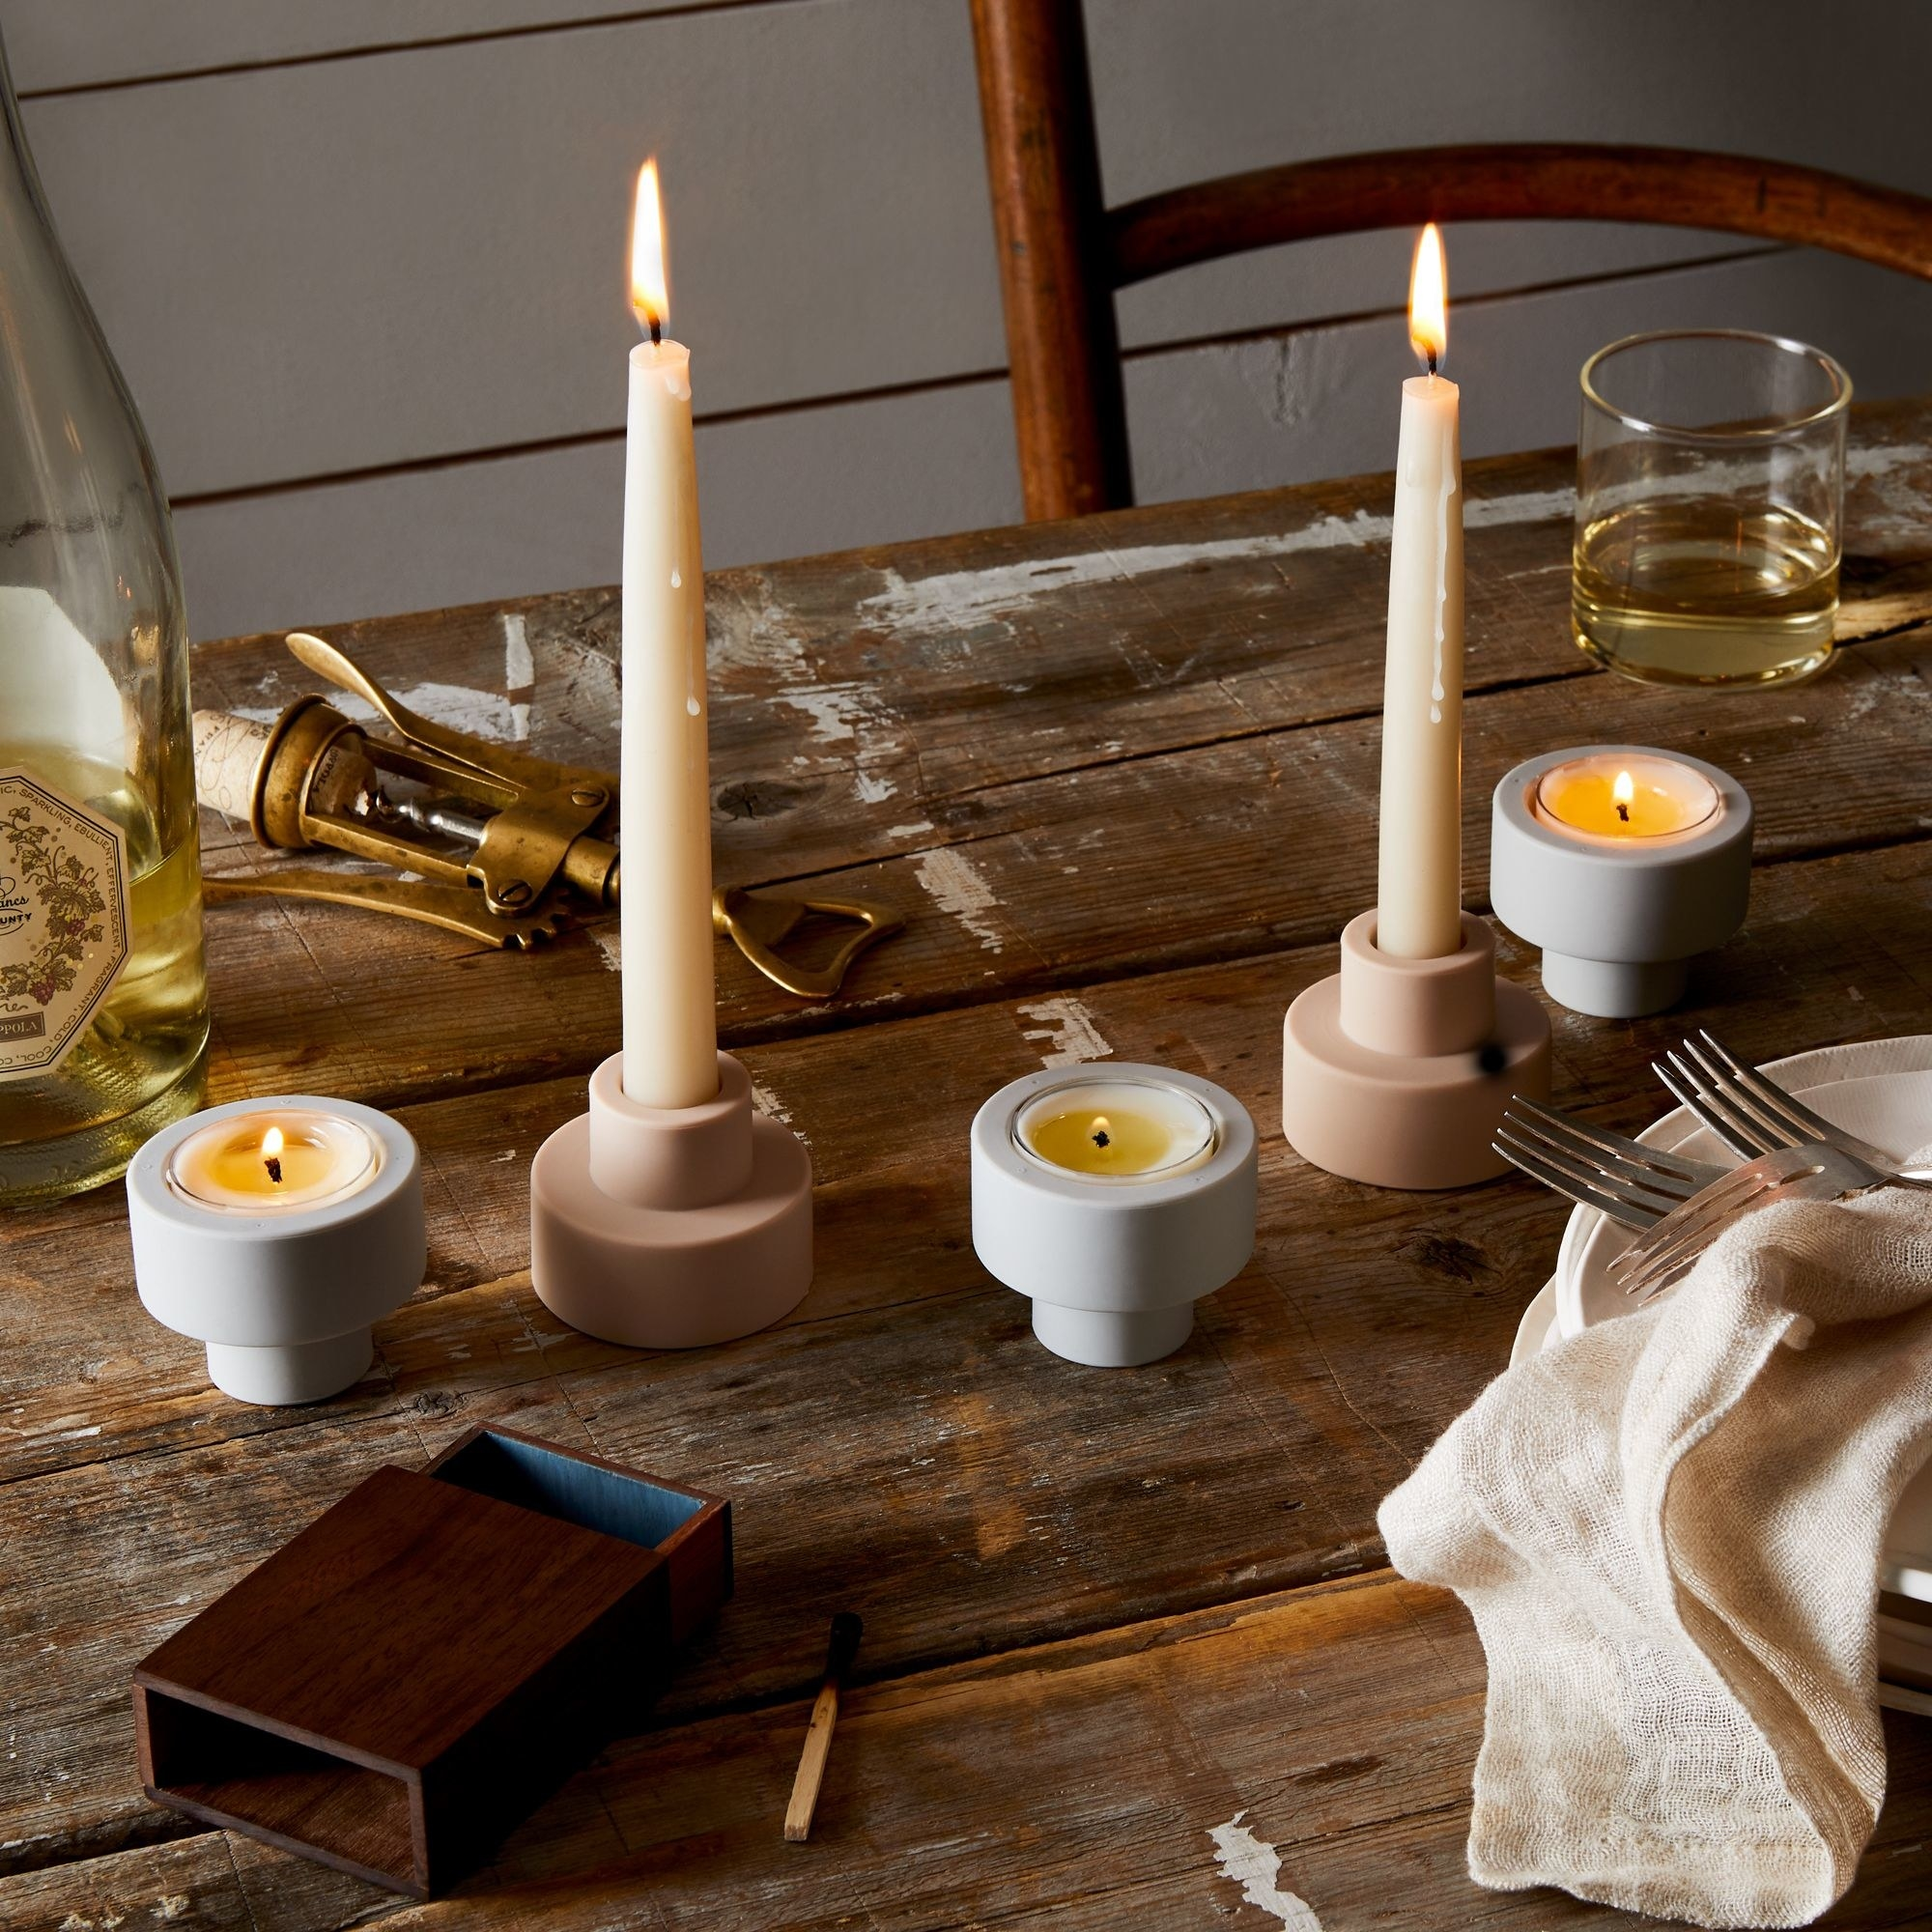 The candle holders on a table with tea lights and large candles